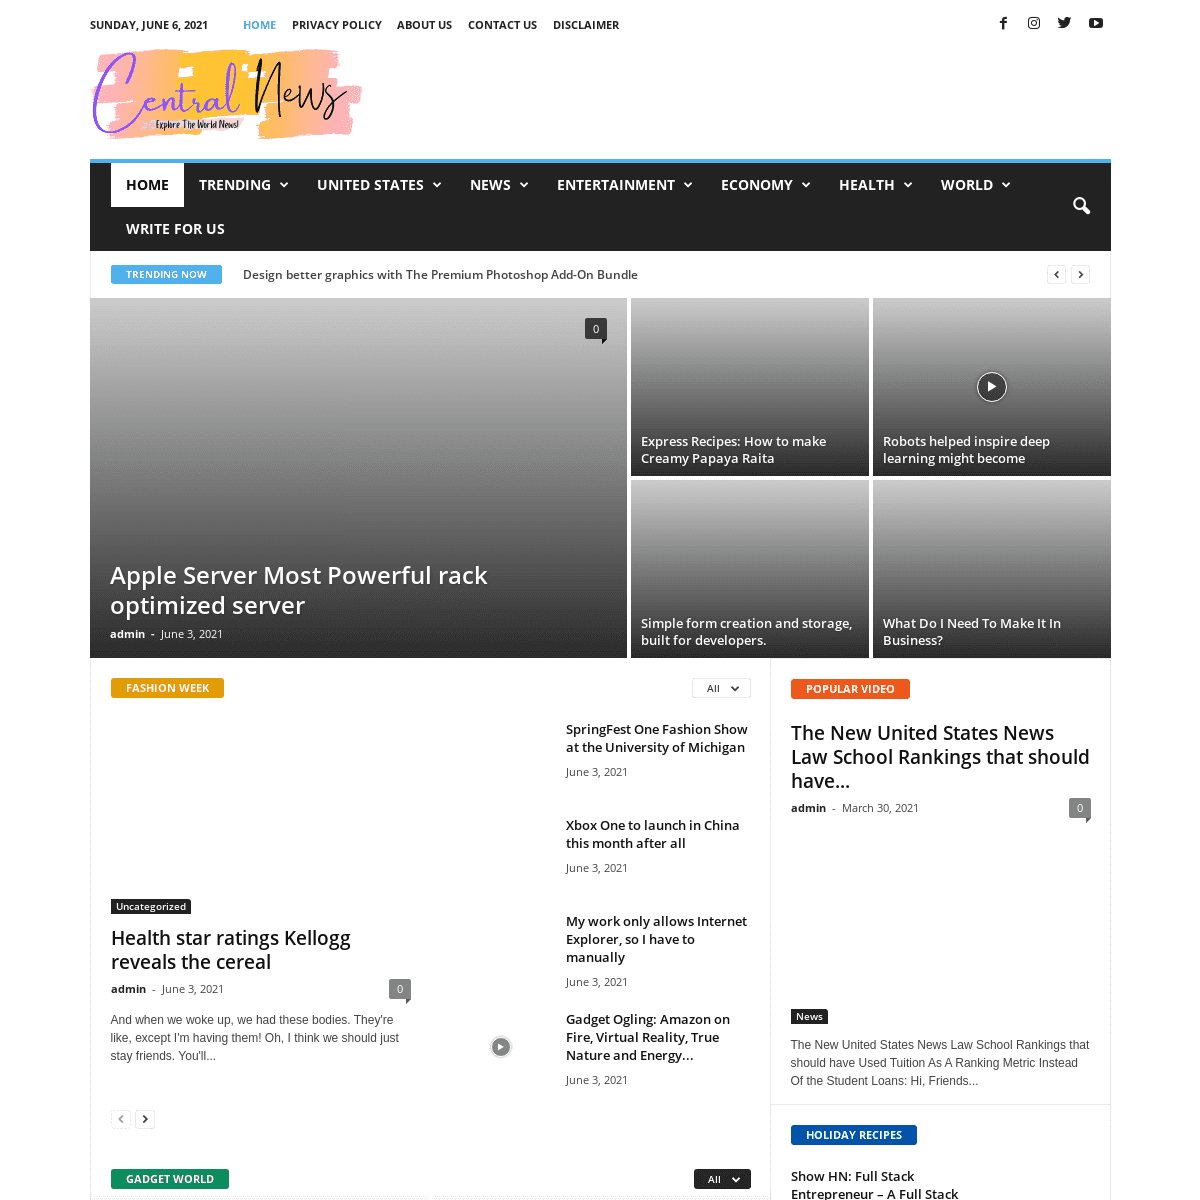 A complete backup of https://centralfallout.com